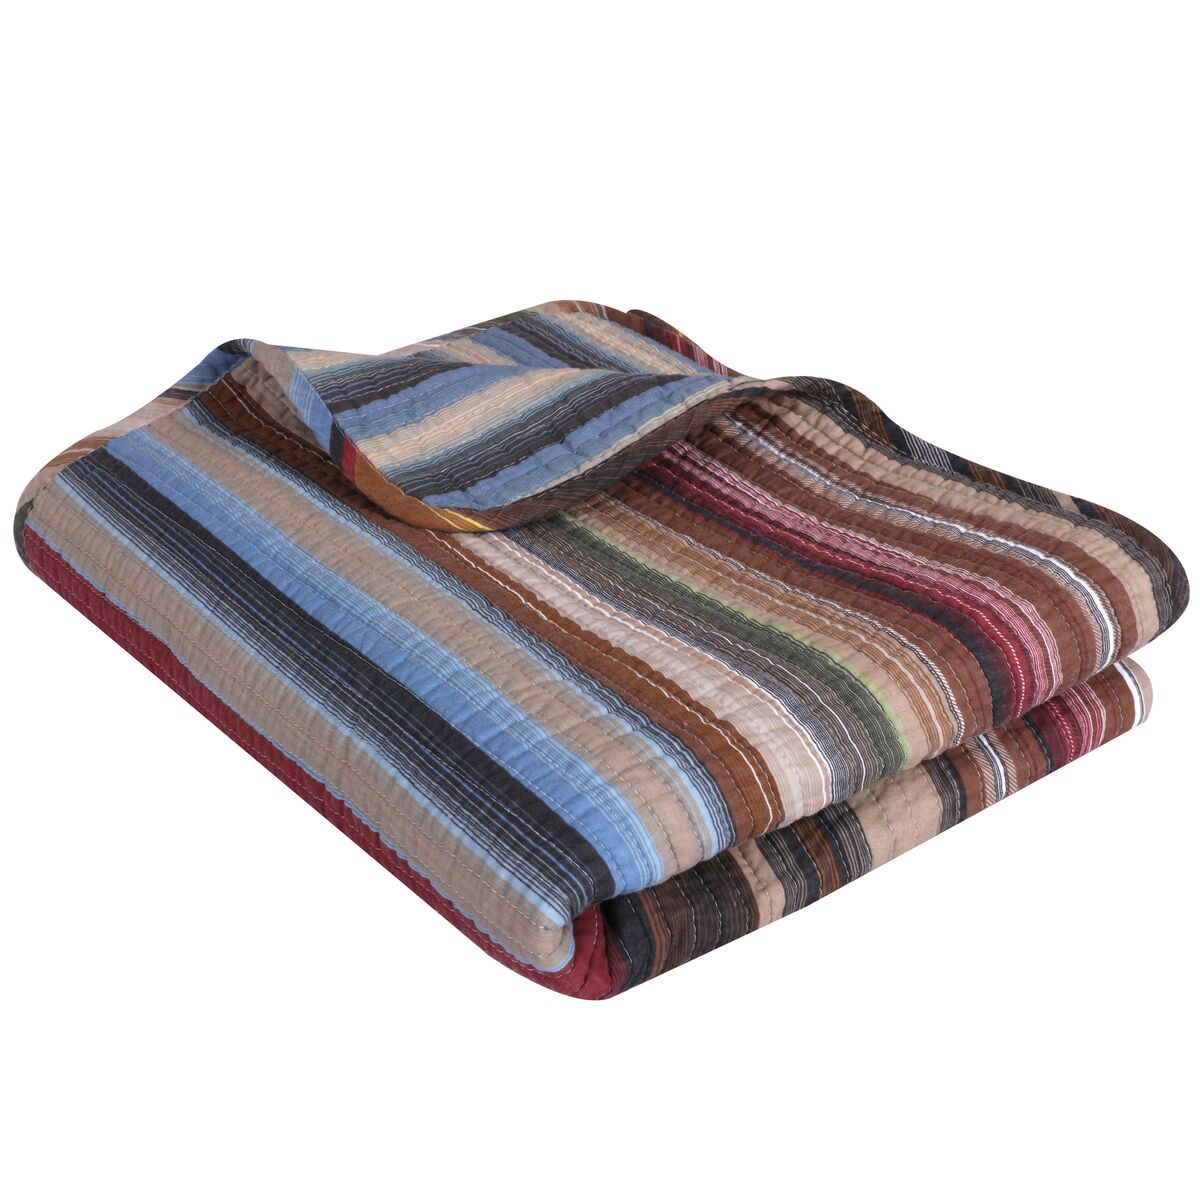 Durango Multi Accessory Throw